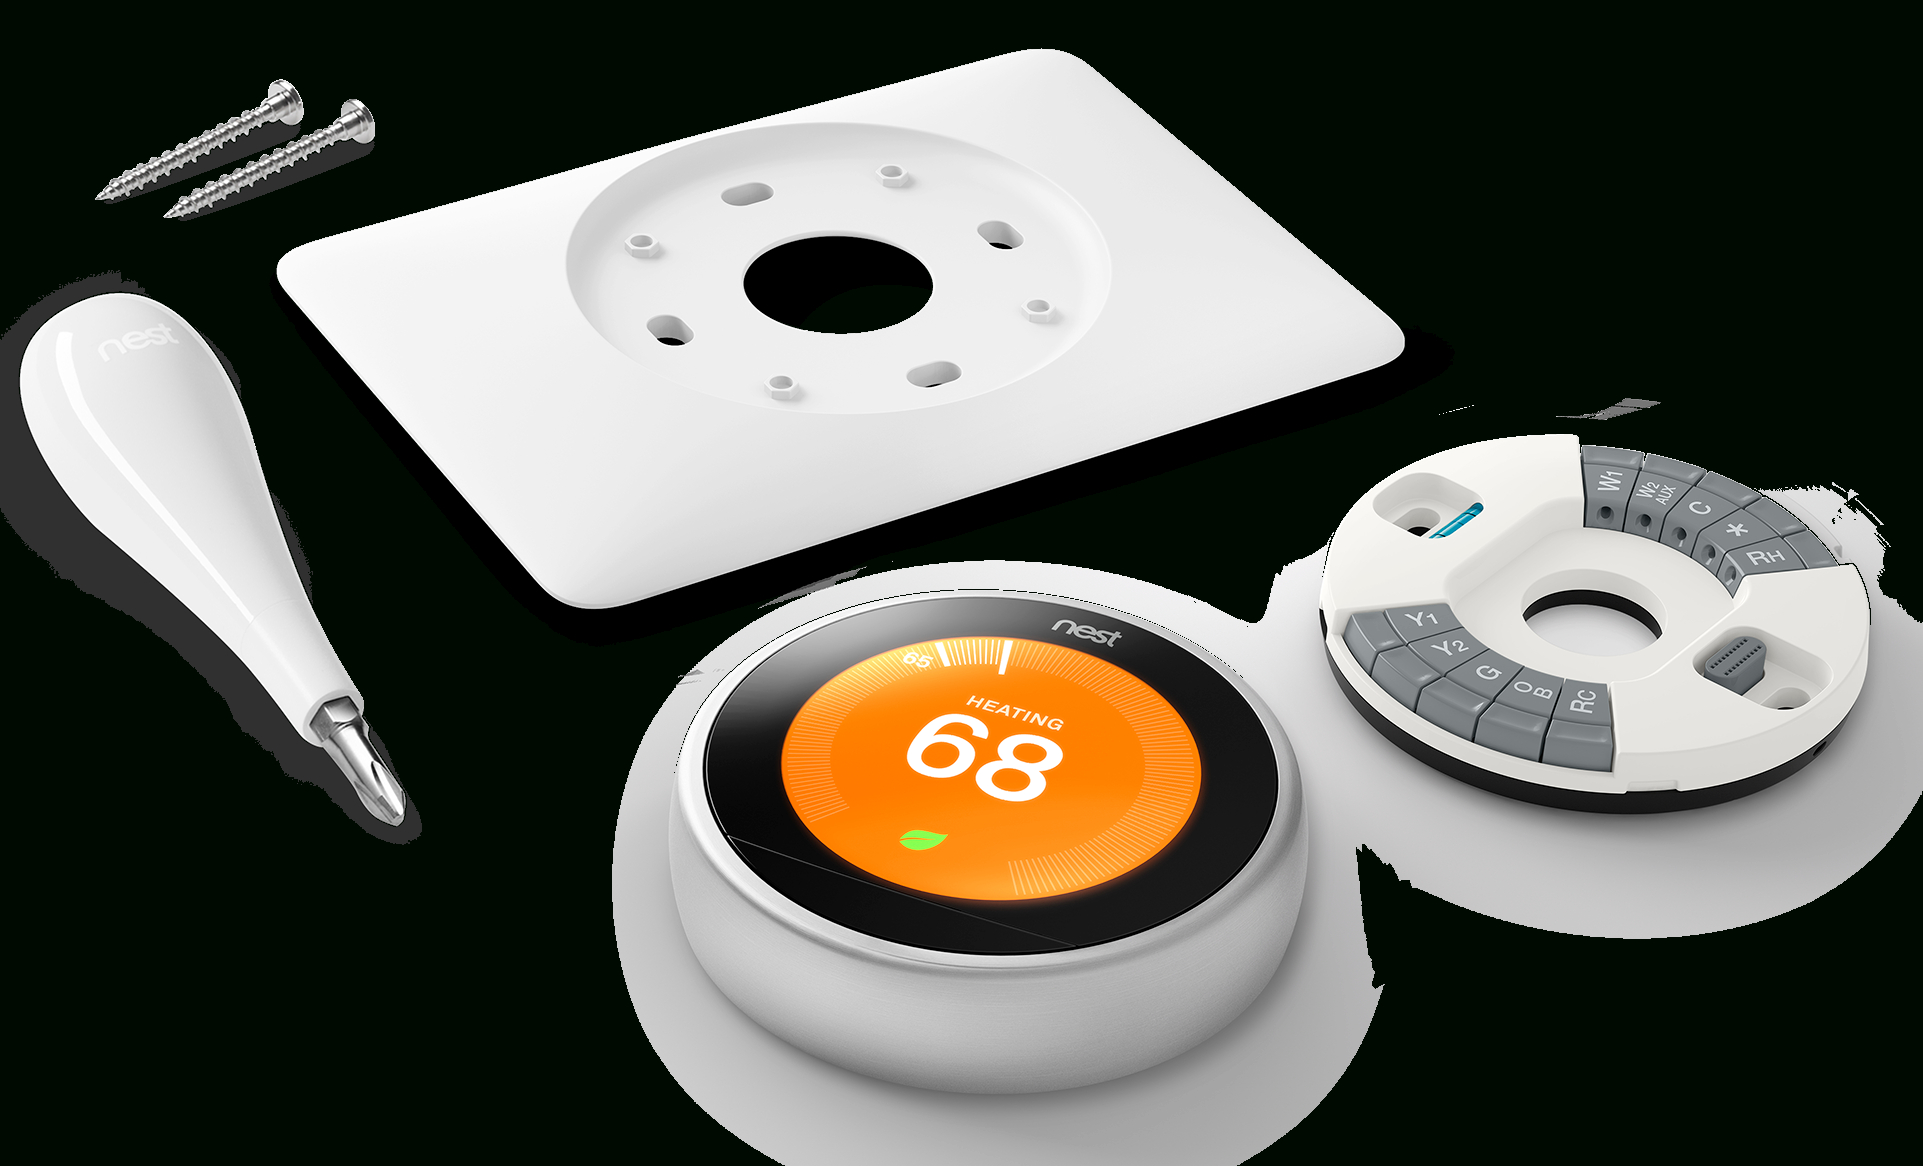 How To Install Your Nest Thermostat - Nest Thermostat 3Rd Gen Wiring Diagram